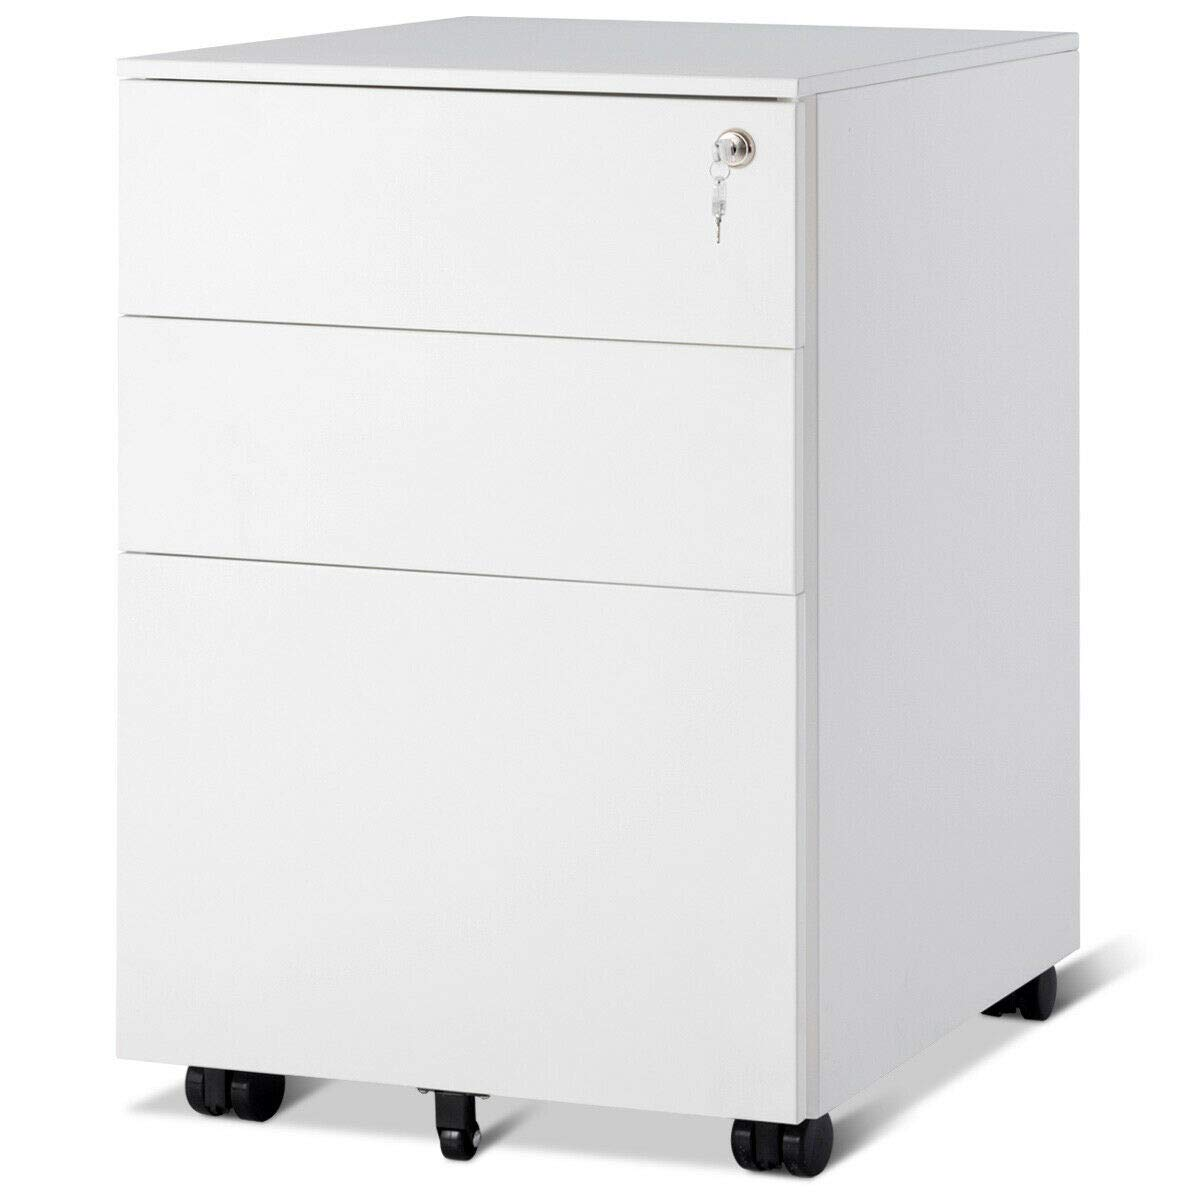 Giantex File Cabinet W/3 Lockable Drawers Include 2 Keys, Wheels, Hanging File Frame and Removable Tray, Metal Vertical Full Assembled for Office Mobile Pedestal Rolling File Cabinet (White)